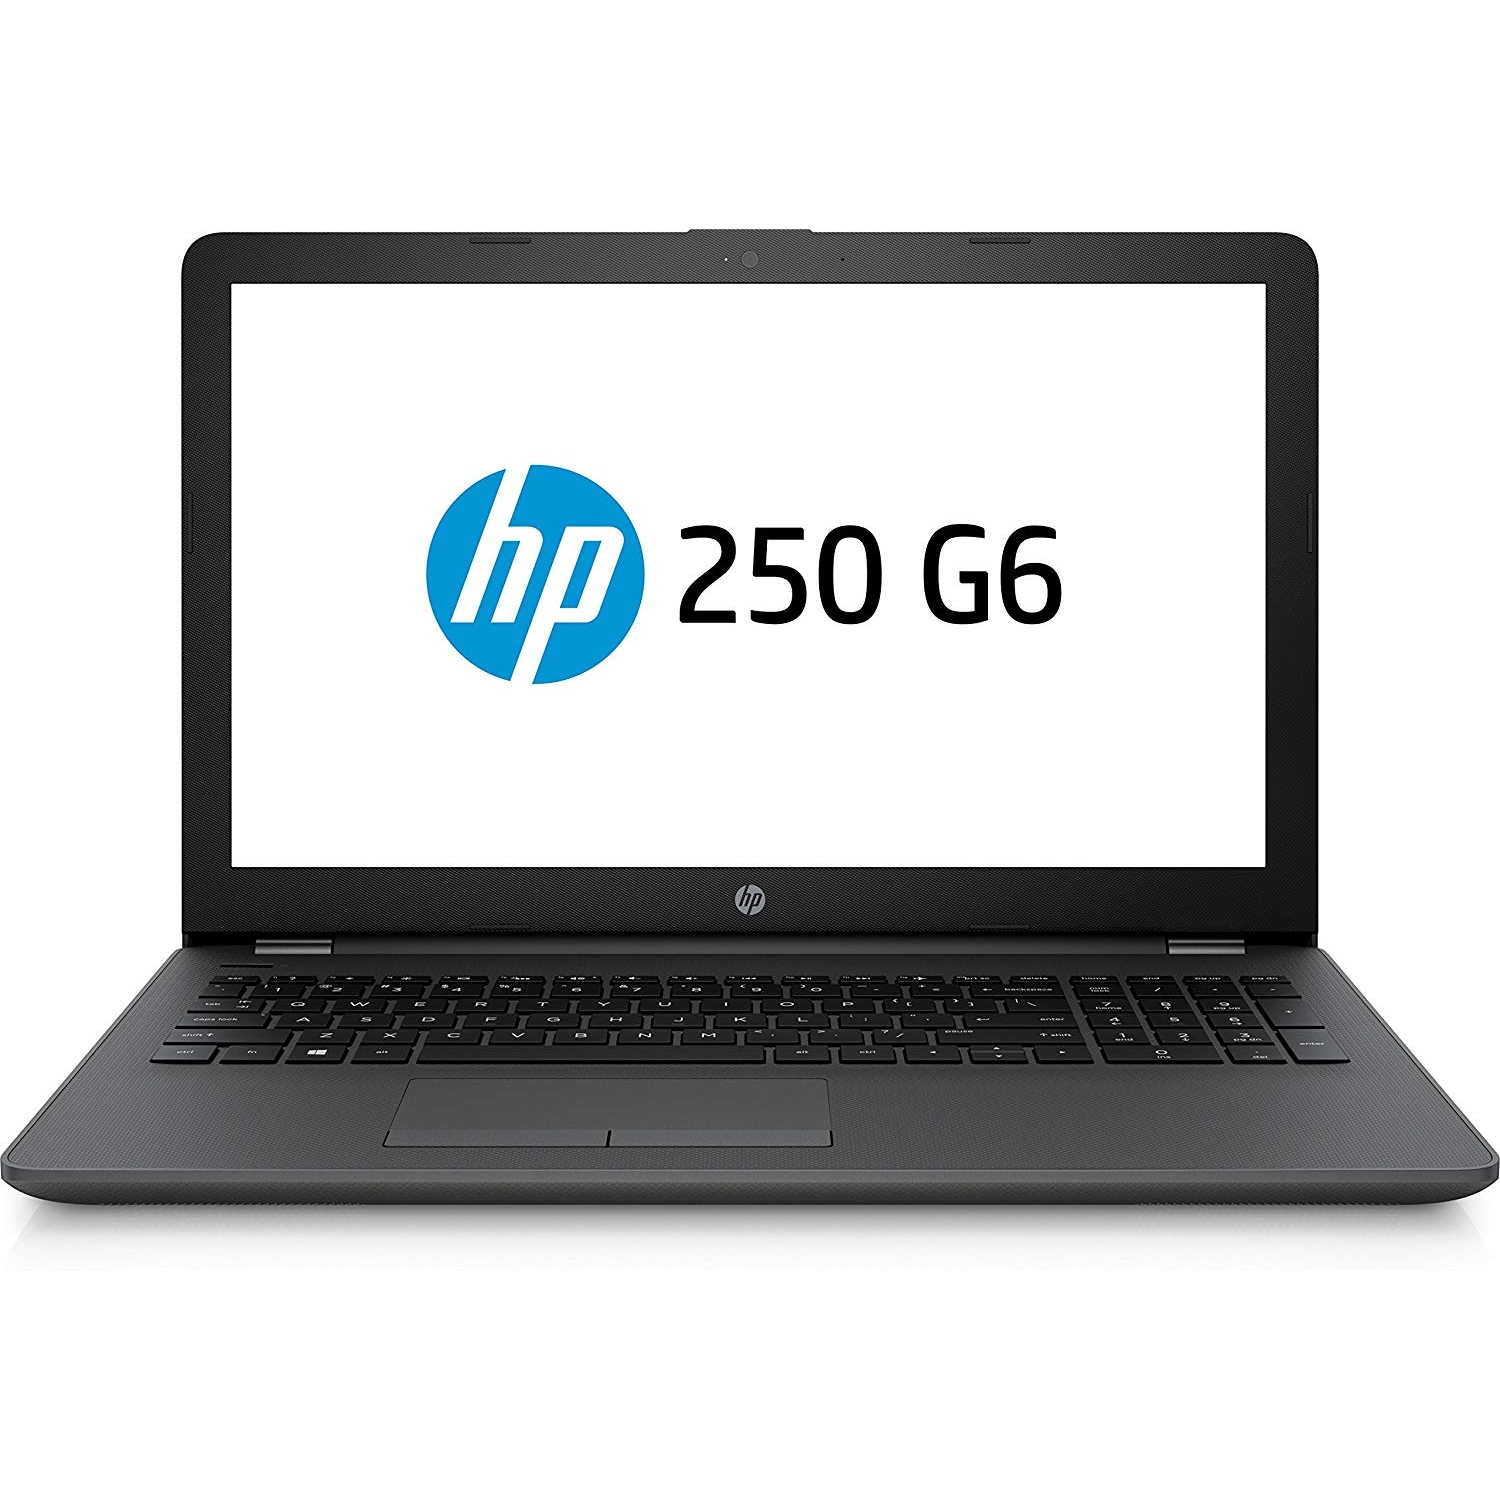 "HP 250 G6 3QM27EA I3-7020 4GB 500GB 2GB R5-M520 15.6"" FREEDOS NOTEBOOK"